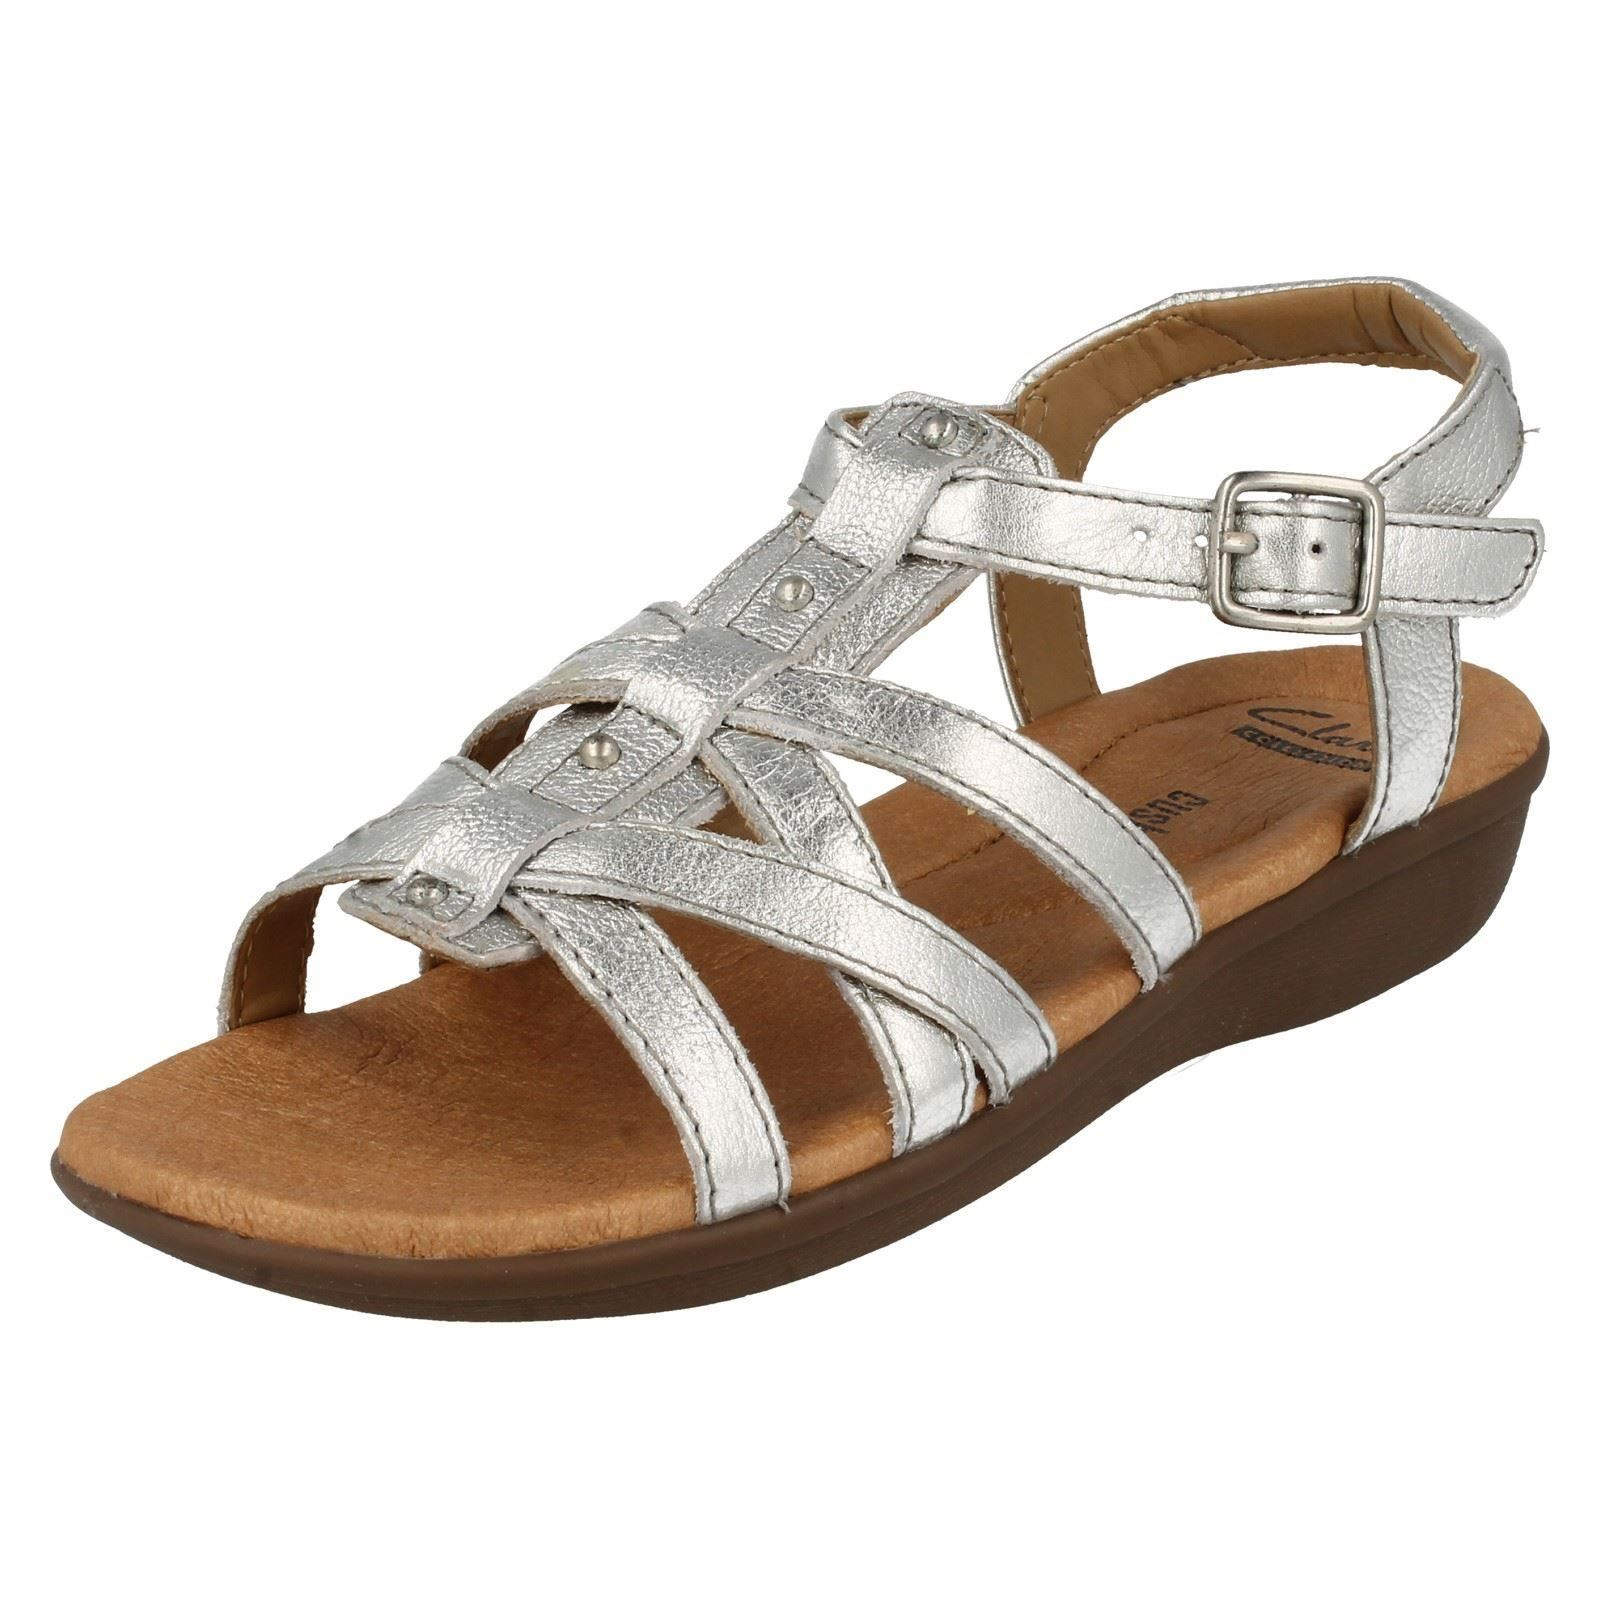 fe5393db8d64 Ladies Clarks Gladiator Style Summer Sandals Manilla Bonita 7.5 UK Silver  D. About this product. Picture 1 of 10  Picture 2 of 10 ...